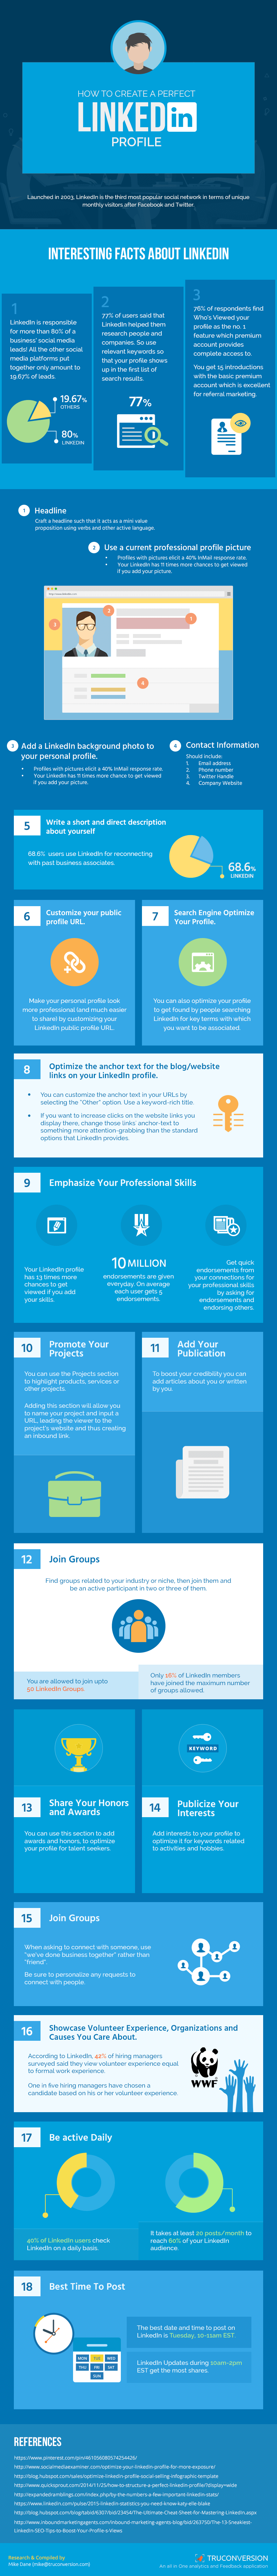 How to Create a Perfect LinkedIn Profile